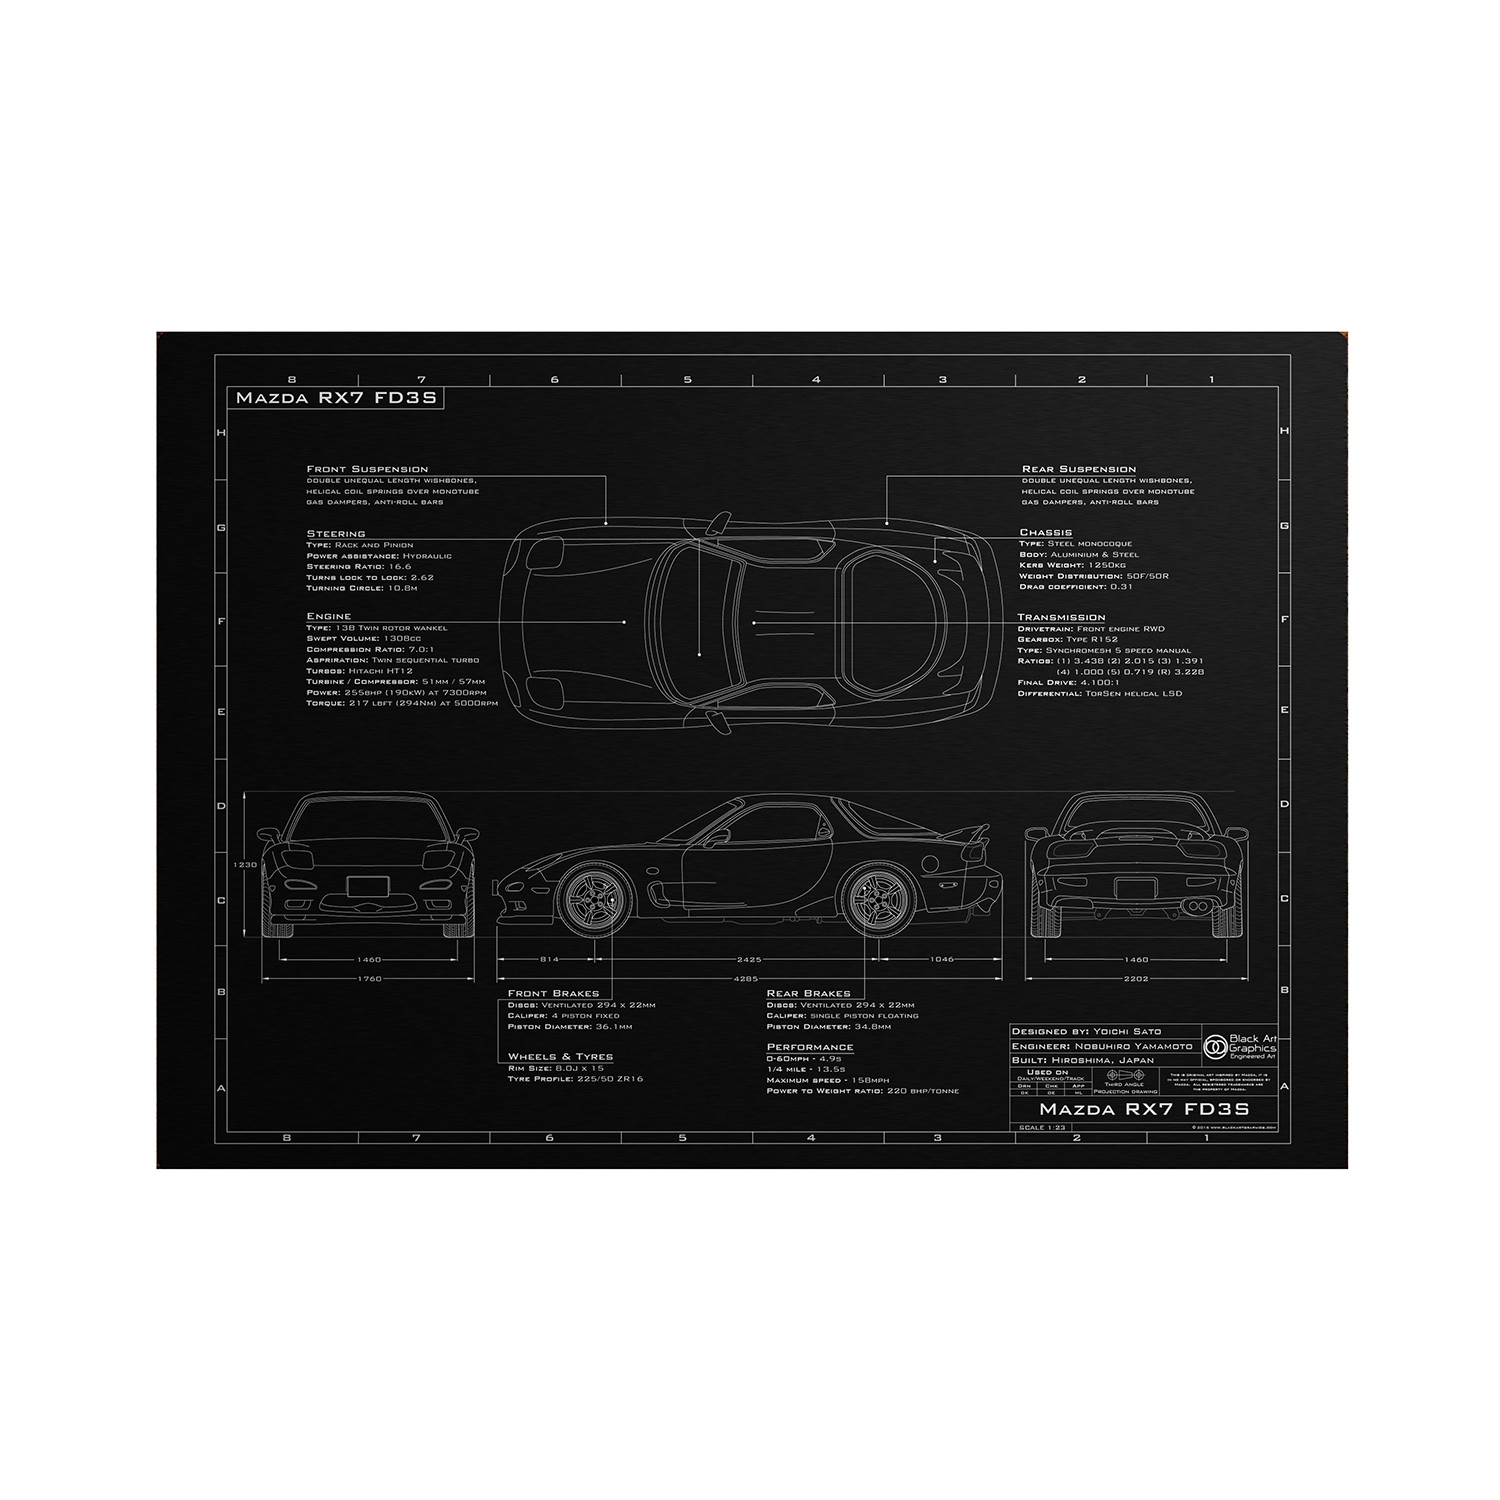 Mazda Rx 7 Front Suspension Diagram Electrical Wiring Diagrams Engine Rx7 Auto Art Touch Of Modern Protege